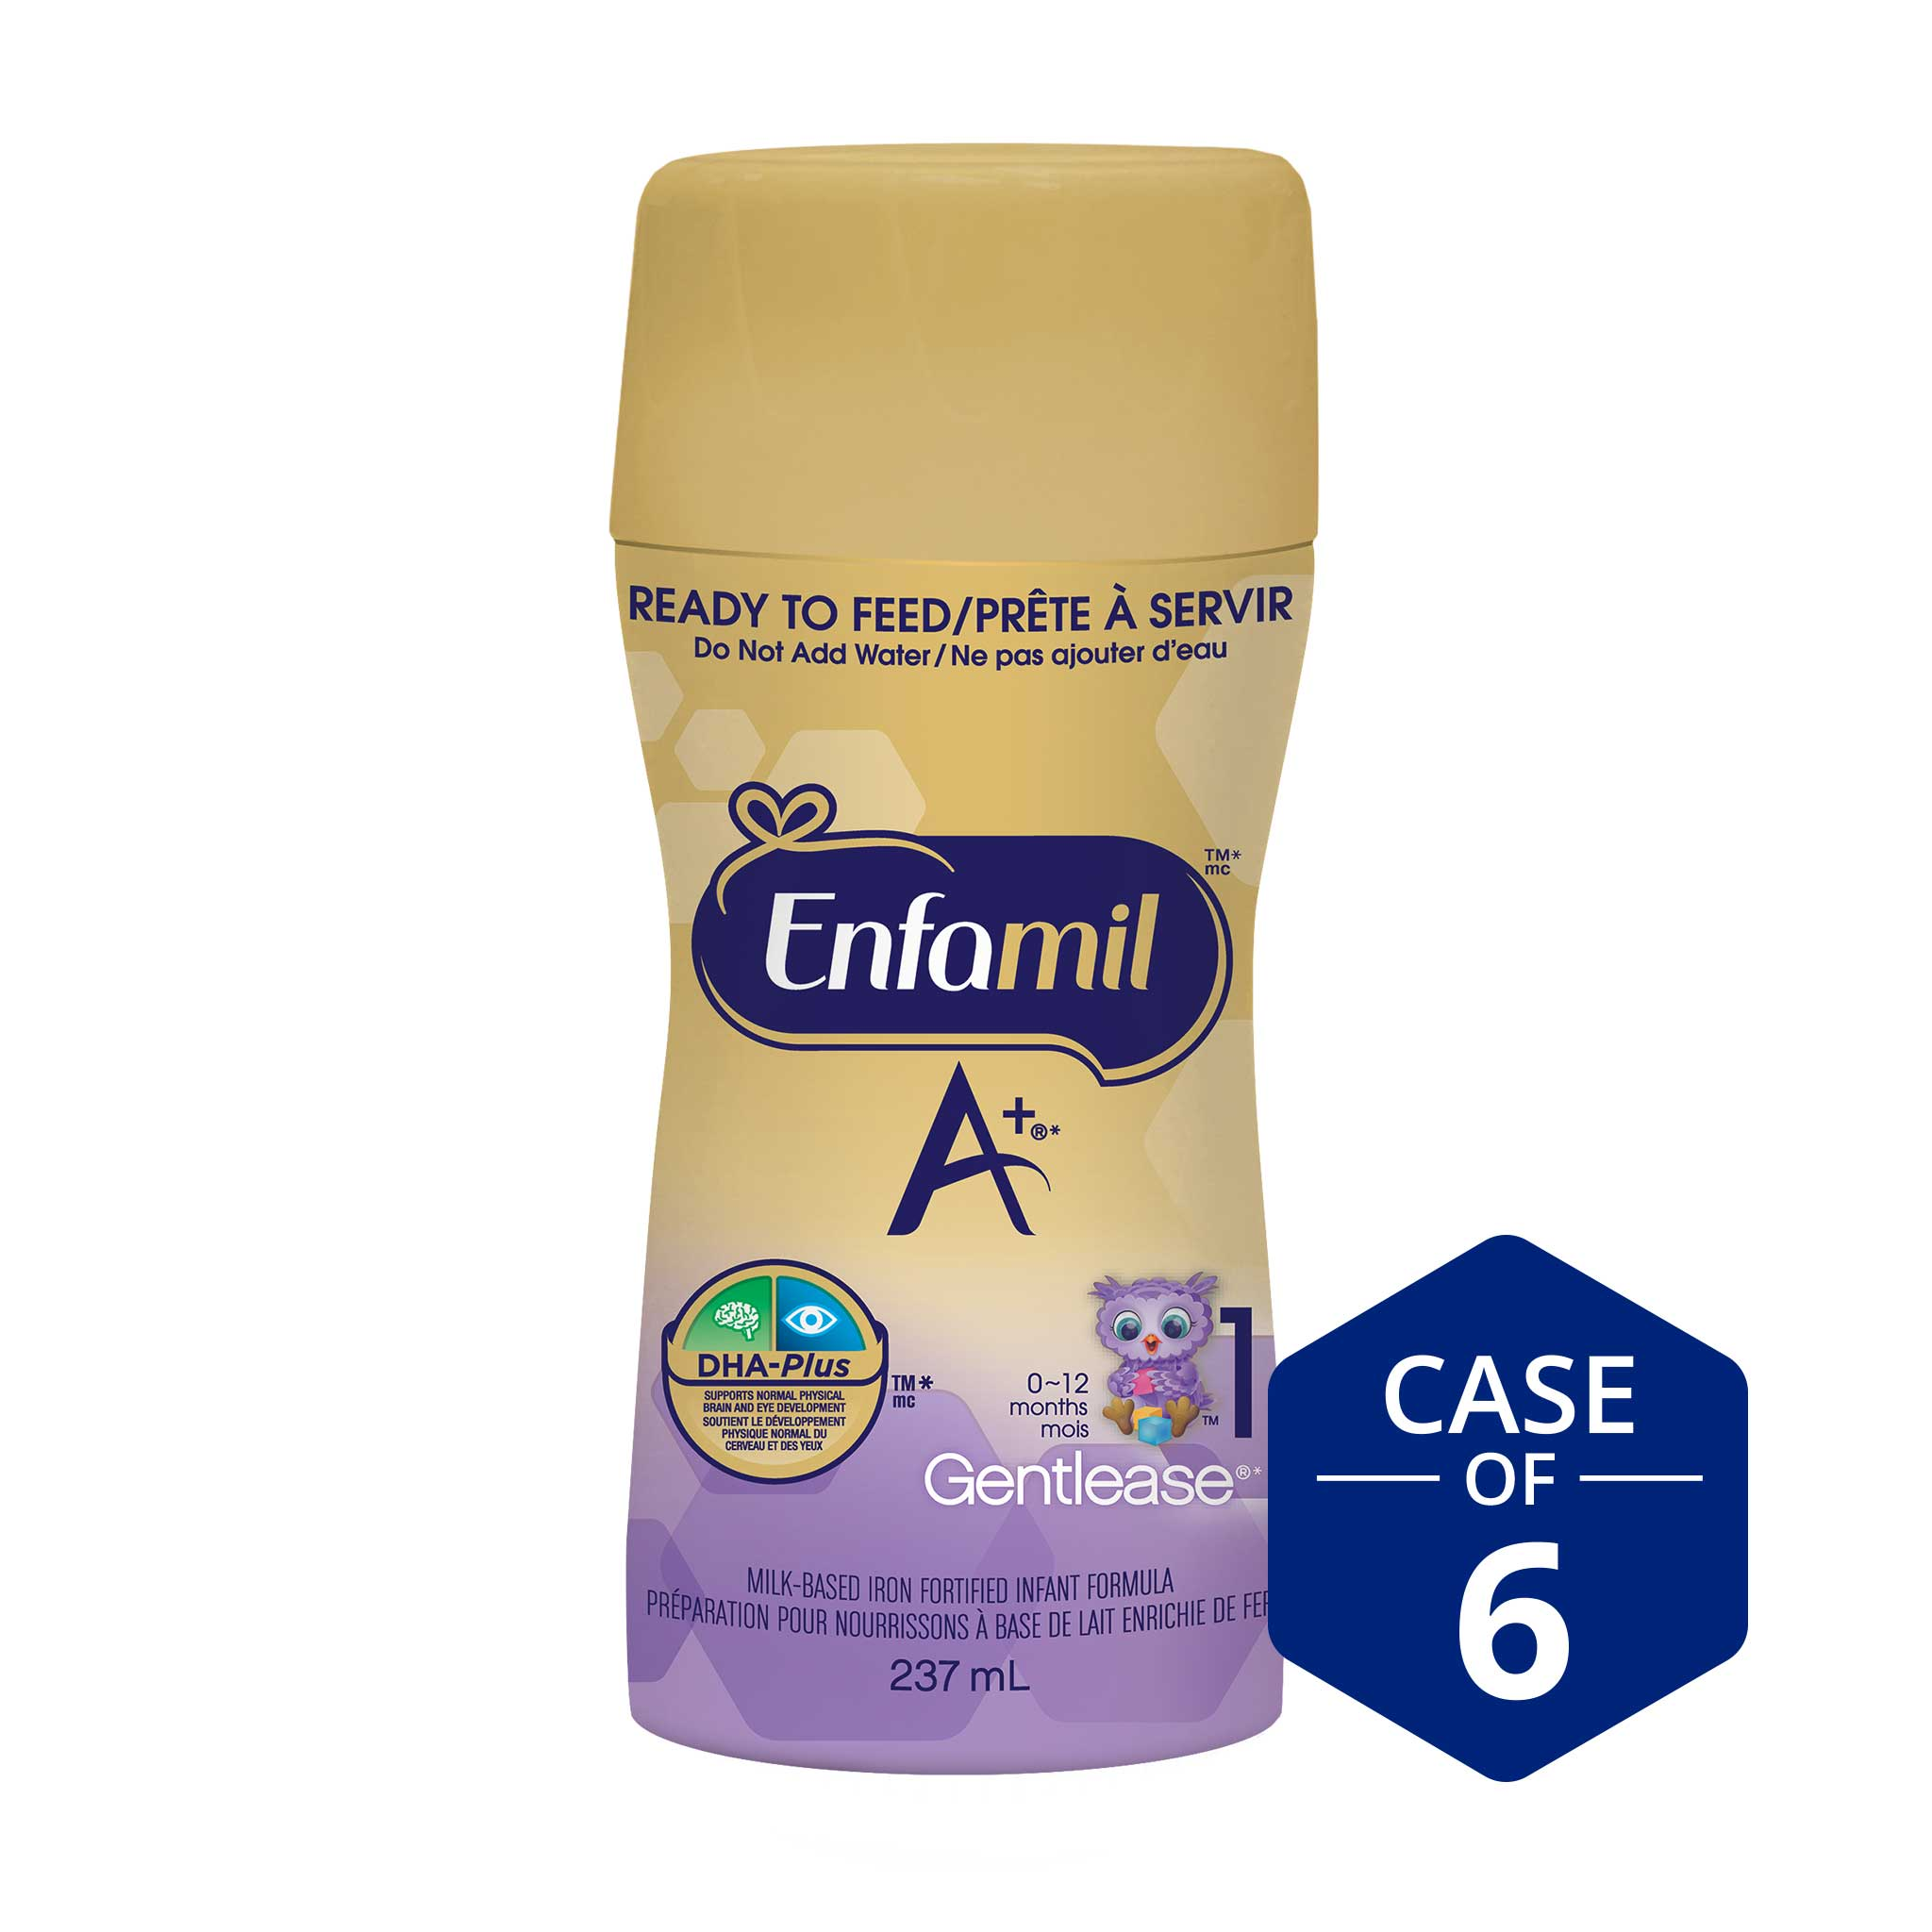 Enfamil A+ Gentlease® Infant Formula, New Nipple-Ready to Feed Bottles, 237mL